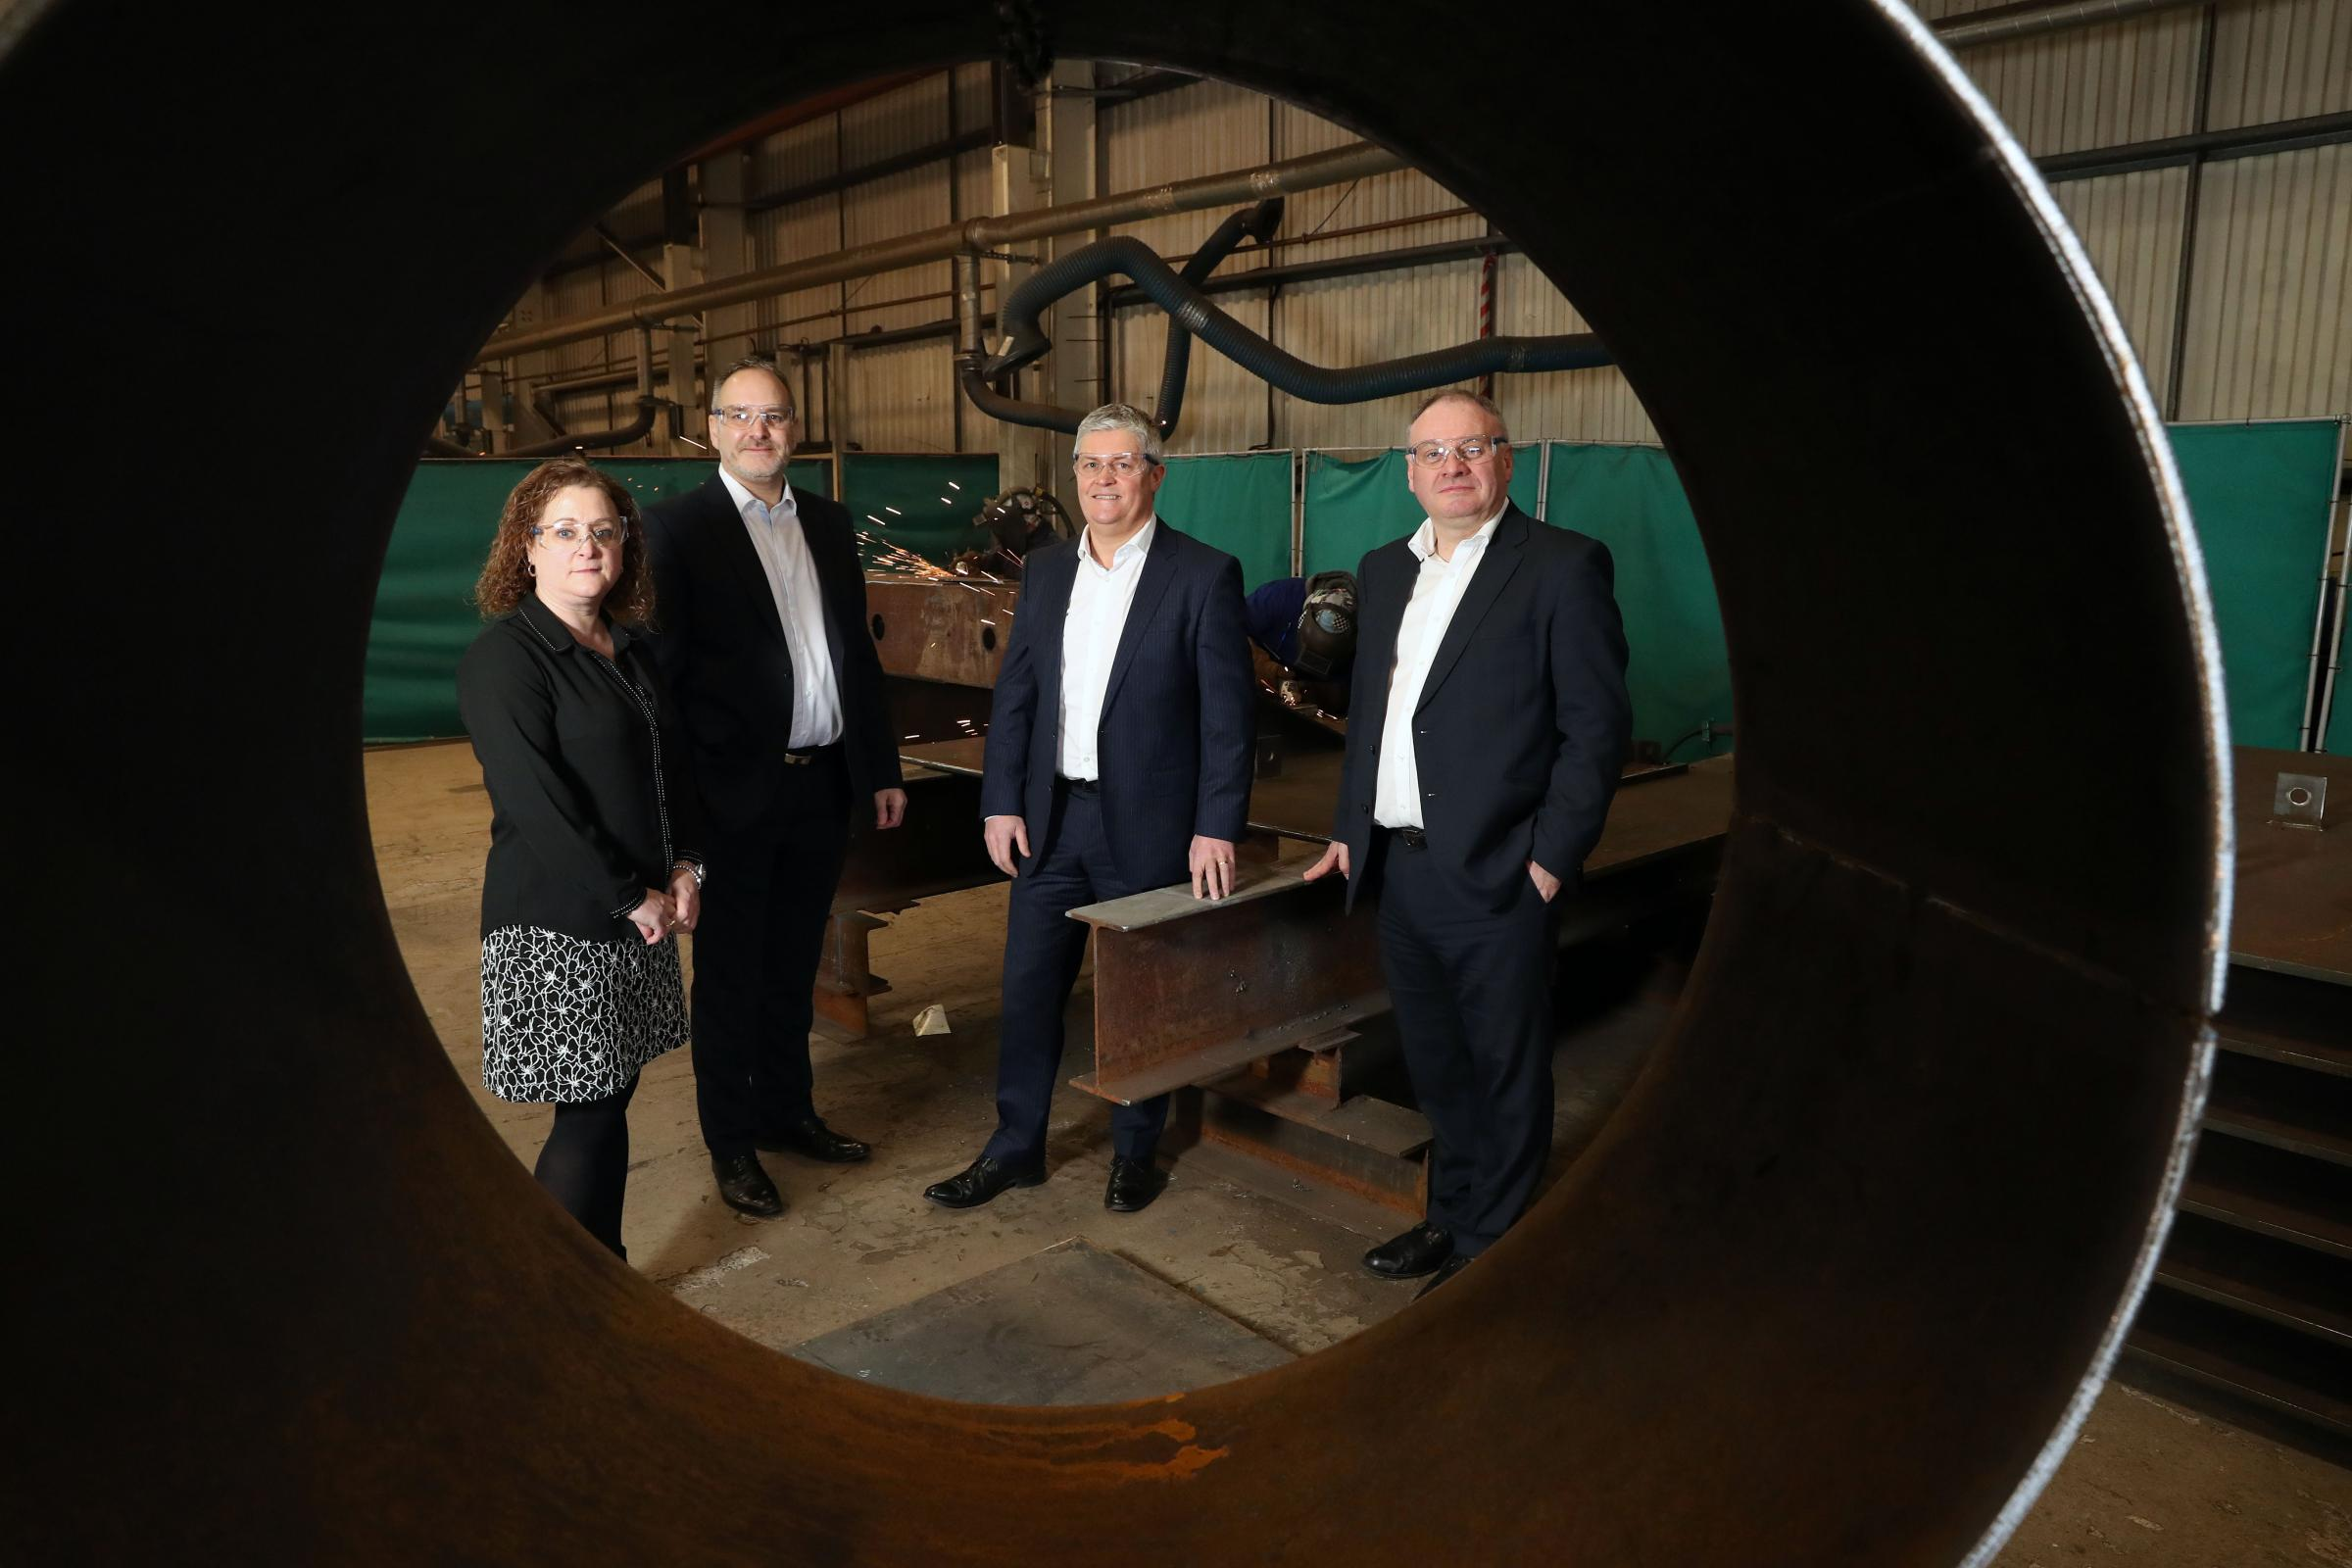 (L-R) Julie Brand, director MII Engineering Ltd, Matthew Moody, finance director MII Engineering Ltd, Brian Arnesen, managing director MII Engineering Ltd and Stephen Galvin, senior investment executive, Development Bank of Wales